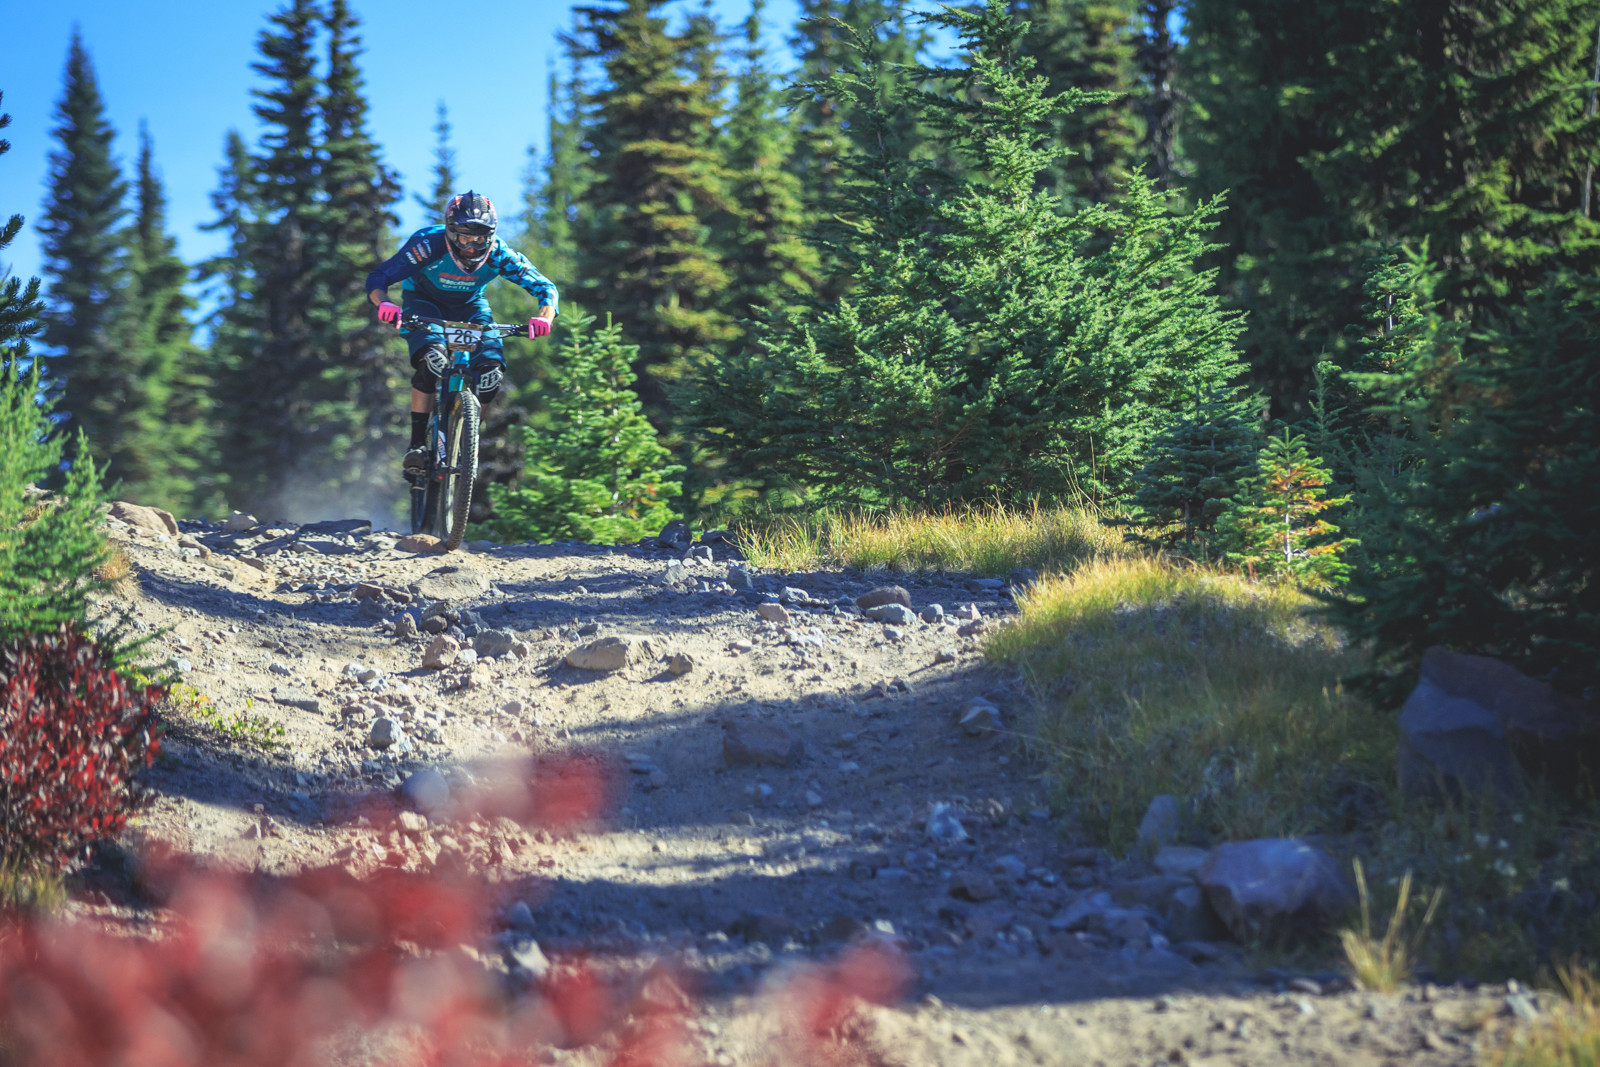 Nate Hills - 2015 Oregon Enduro Series Finals Mt. Hood - Mountain Biking Pictures - Vital MTB